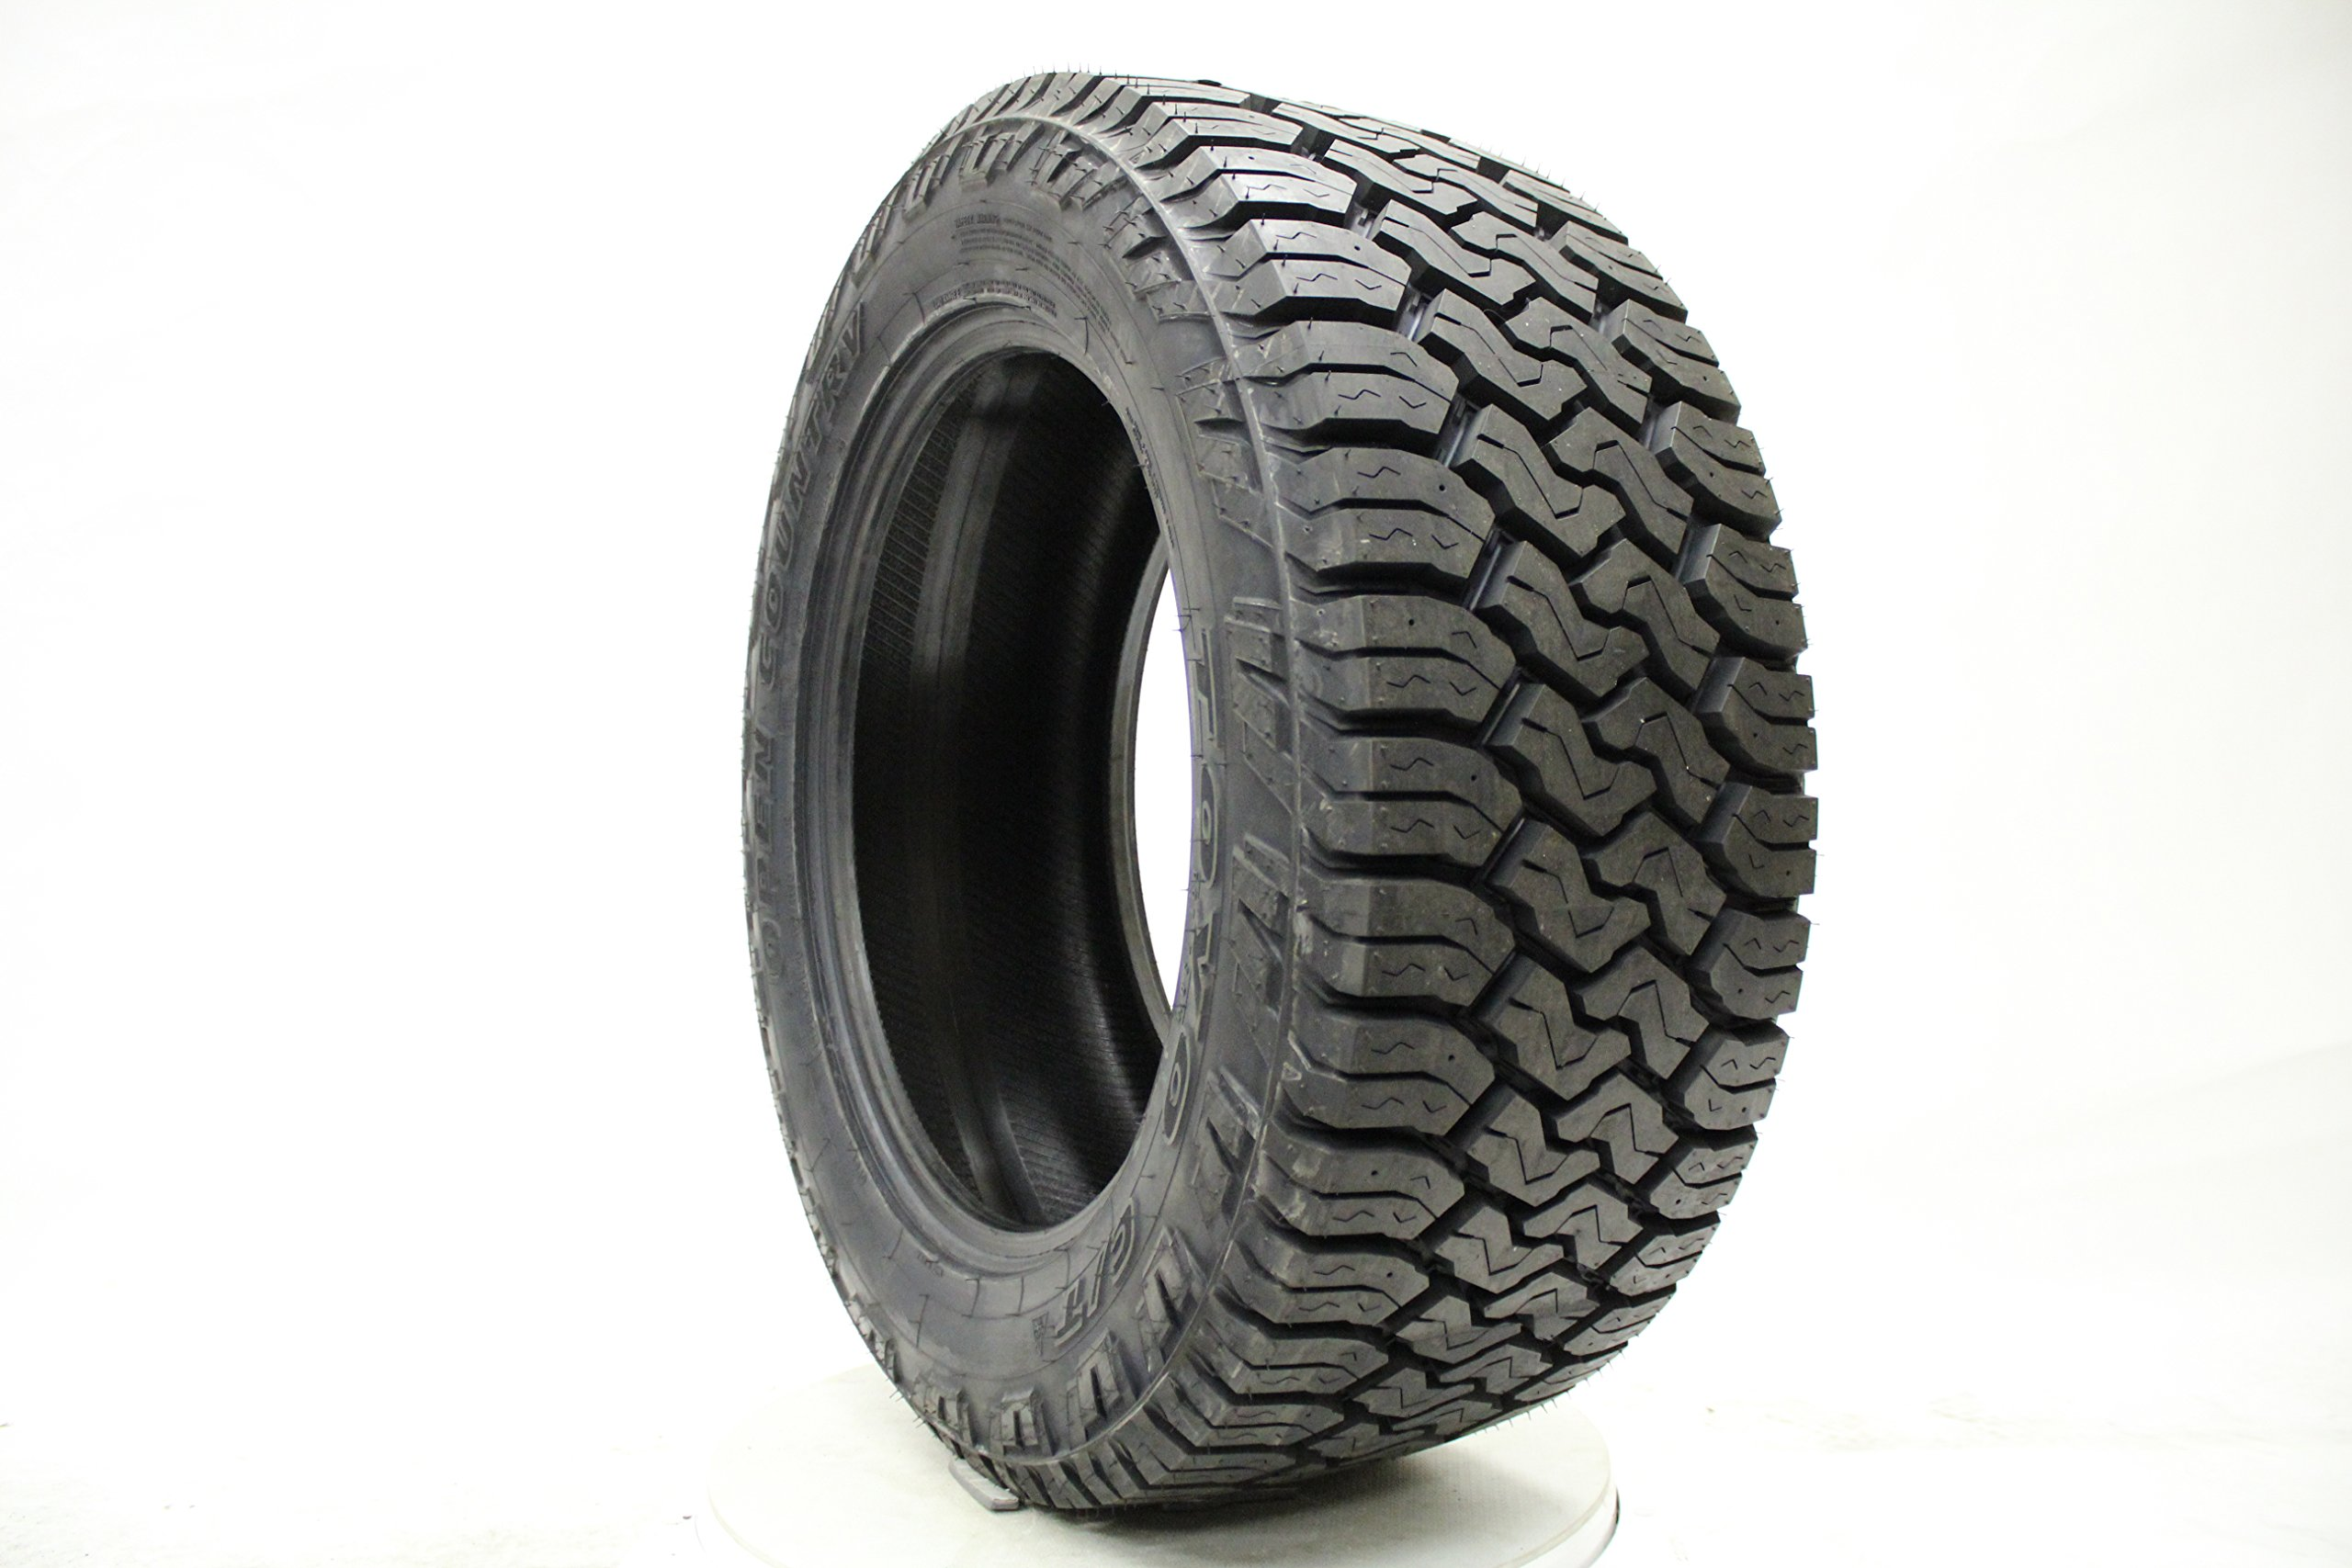 Toyo 345170 Open Country C/T Commercial Truck Tire - LT265/75R16 123Q